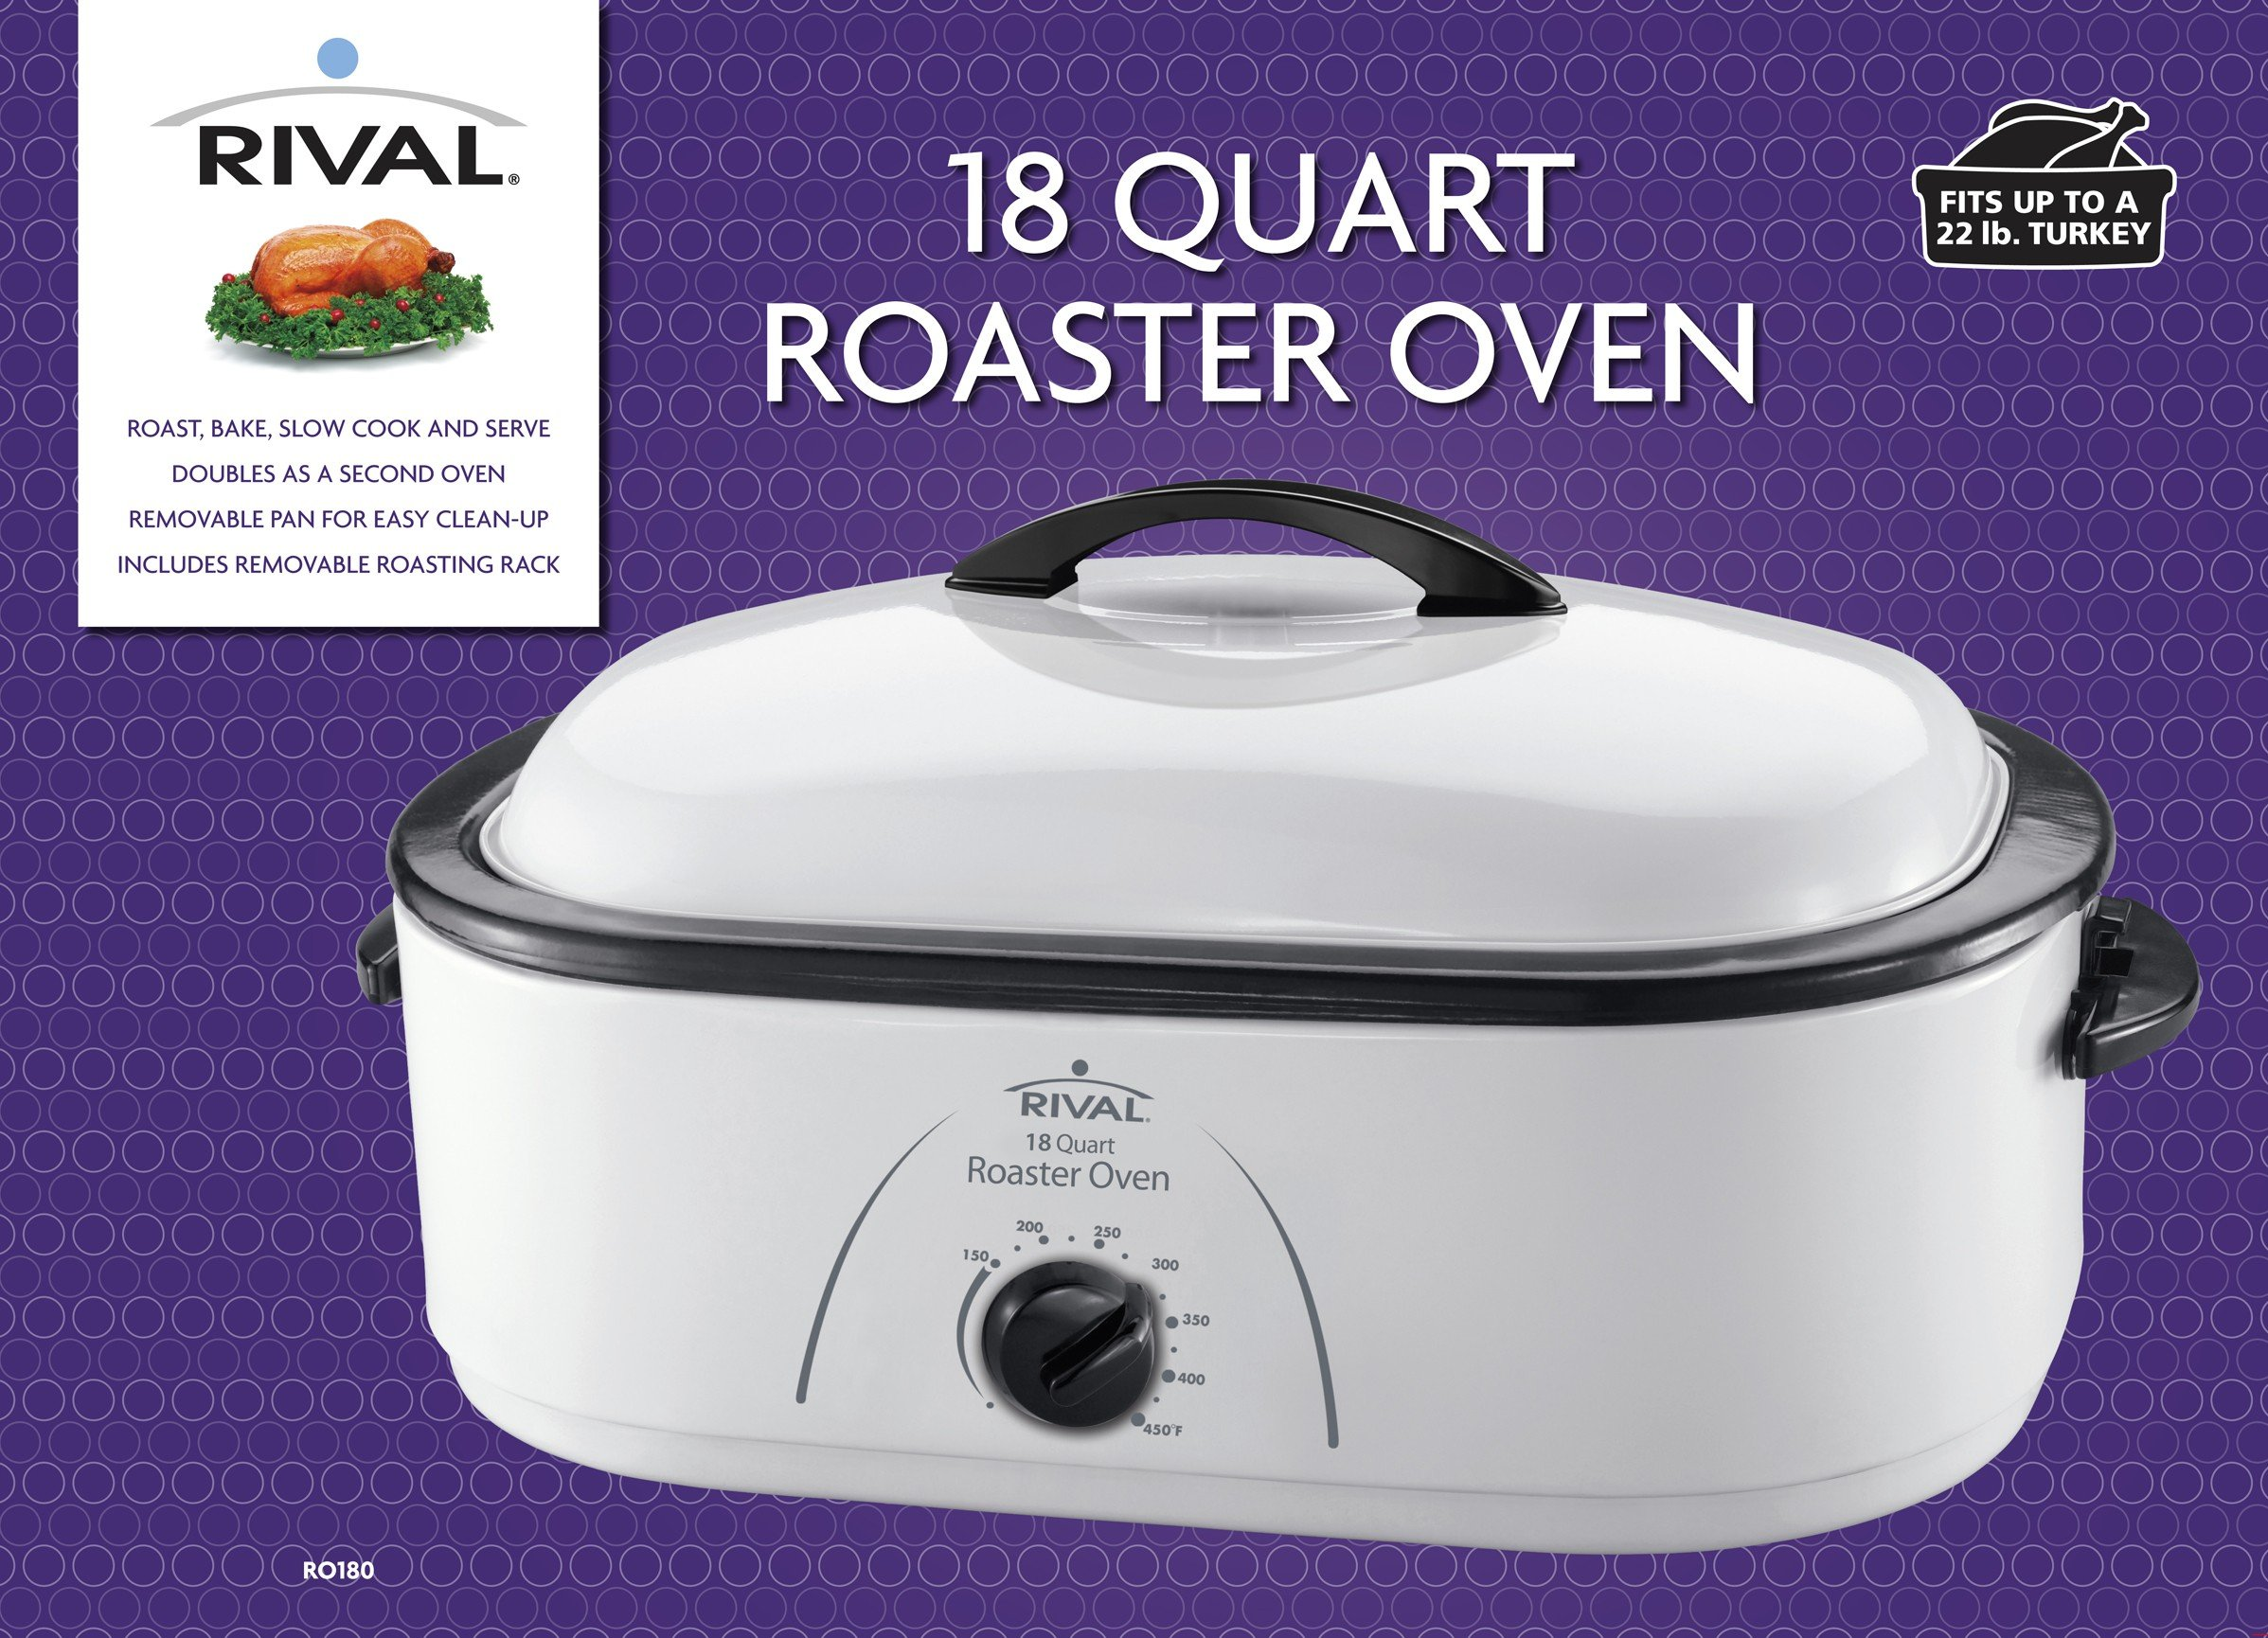 Rival Roaster Oven, 18-Quart, White (RO180) by Rival